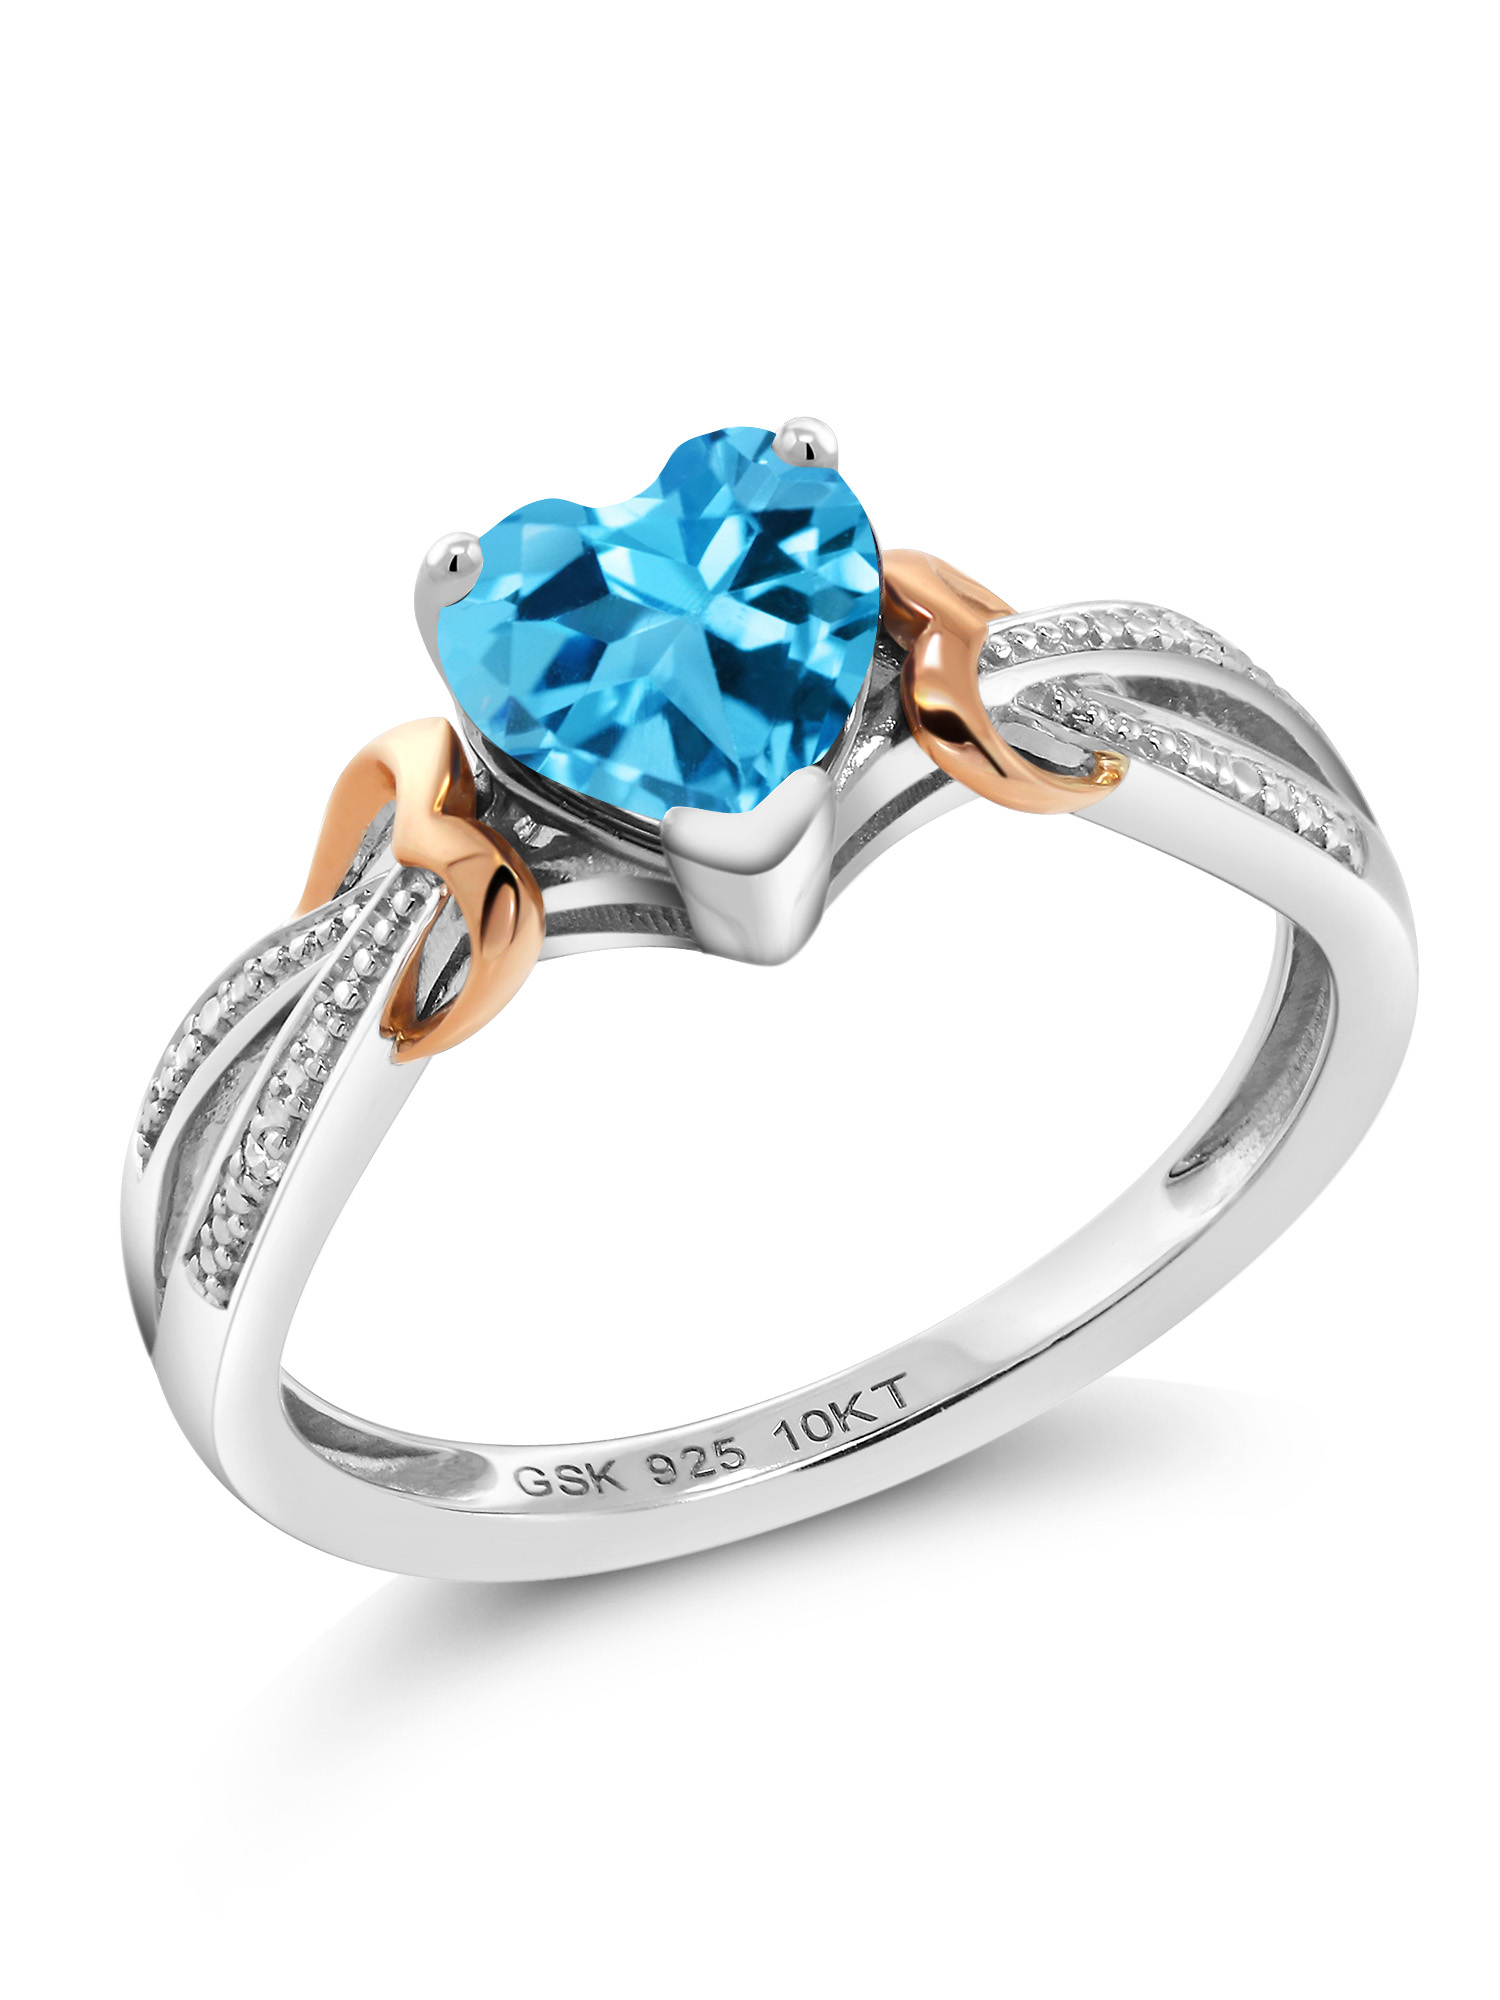 Gem Stone King 2.78 Ct Sky Blue Topaz Simulated Sapphire 18K Rose Gold Plated Silver Mens Ring Available 8,9,10,11,12,13 Available in,9,10,11,12,13